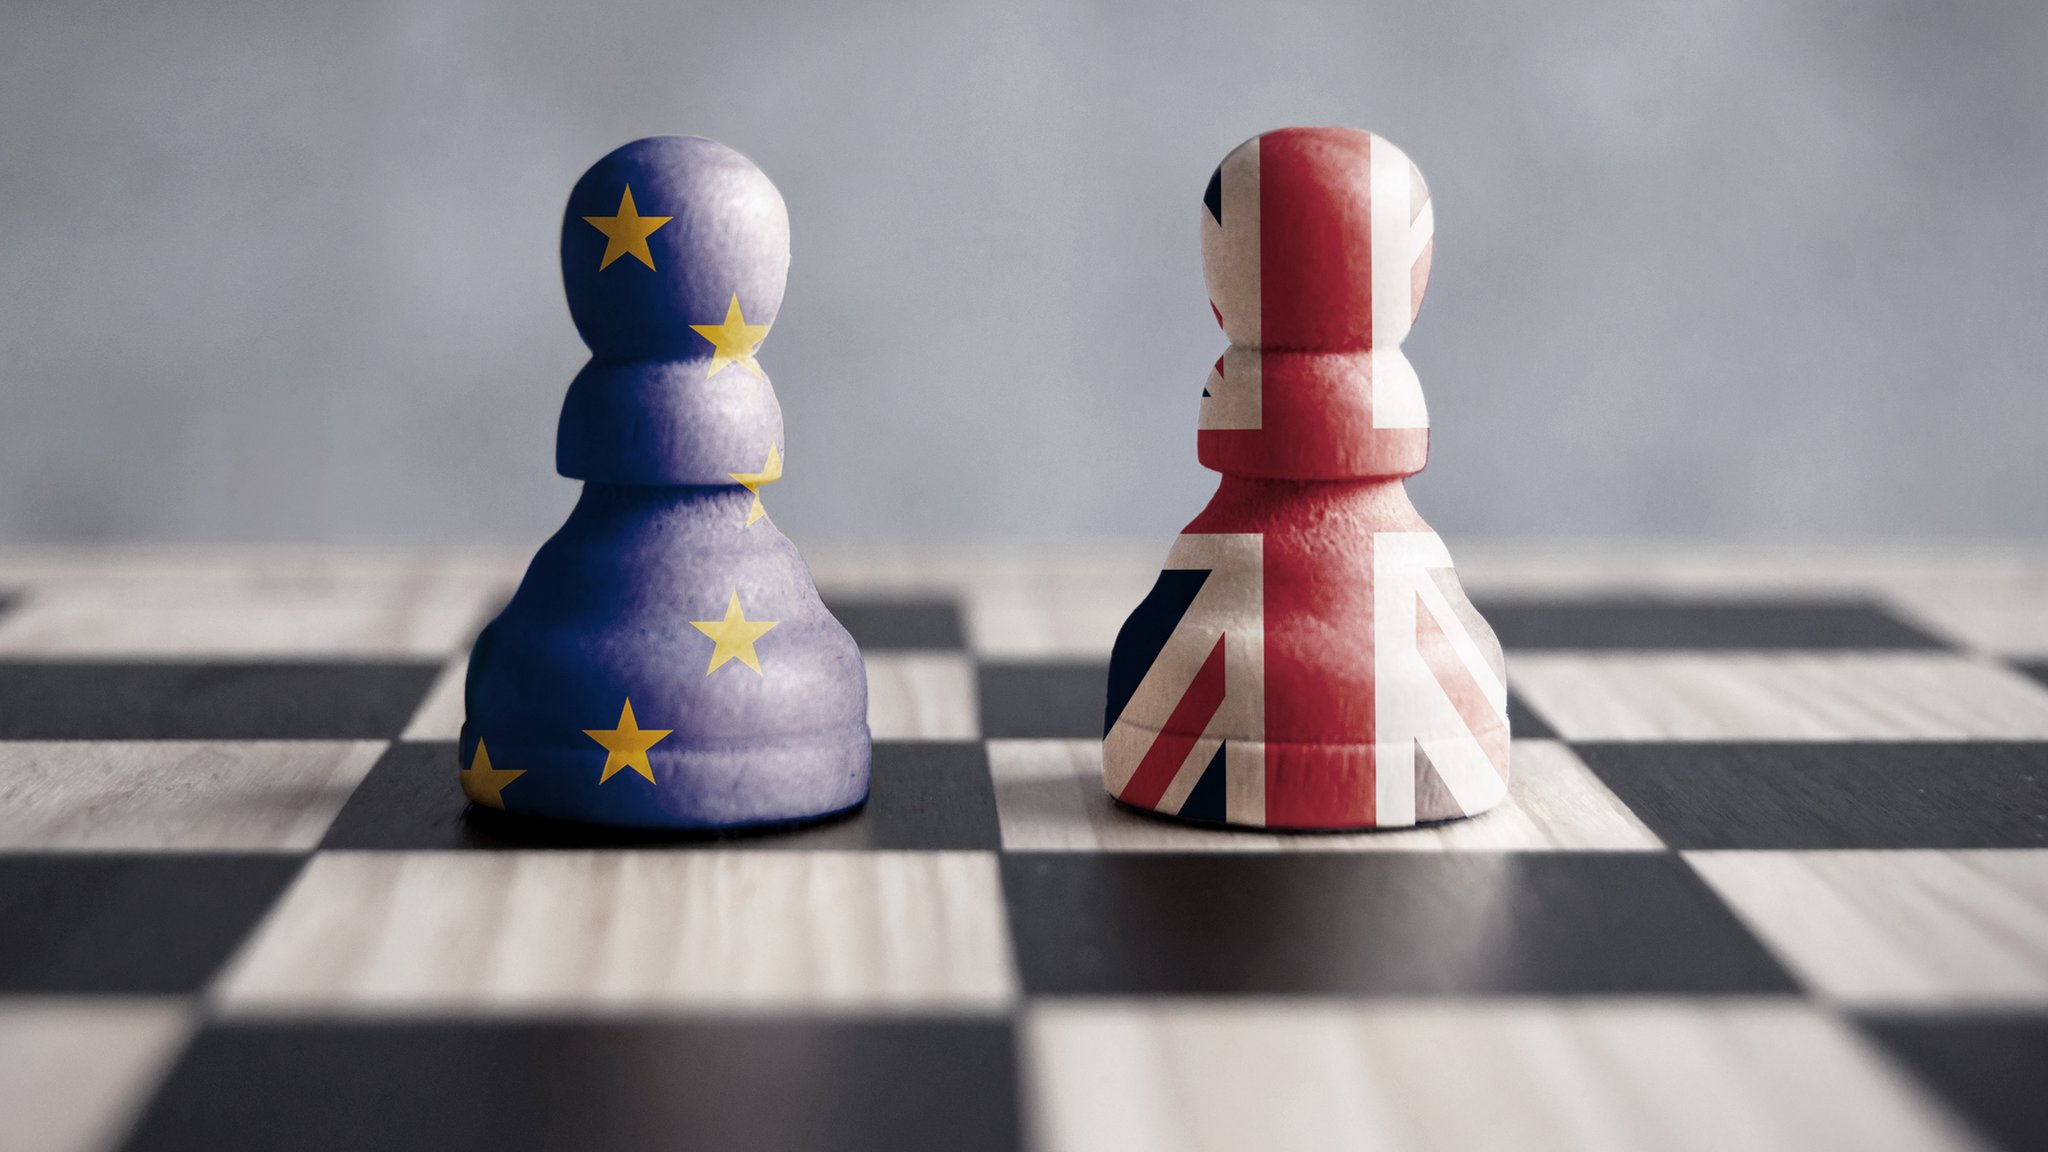 Two chess pieces on a chess board, one enclosed in the EU flag, one enclosed in the union jack.